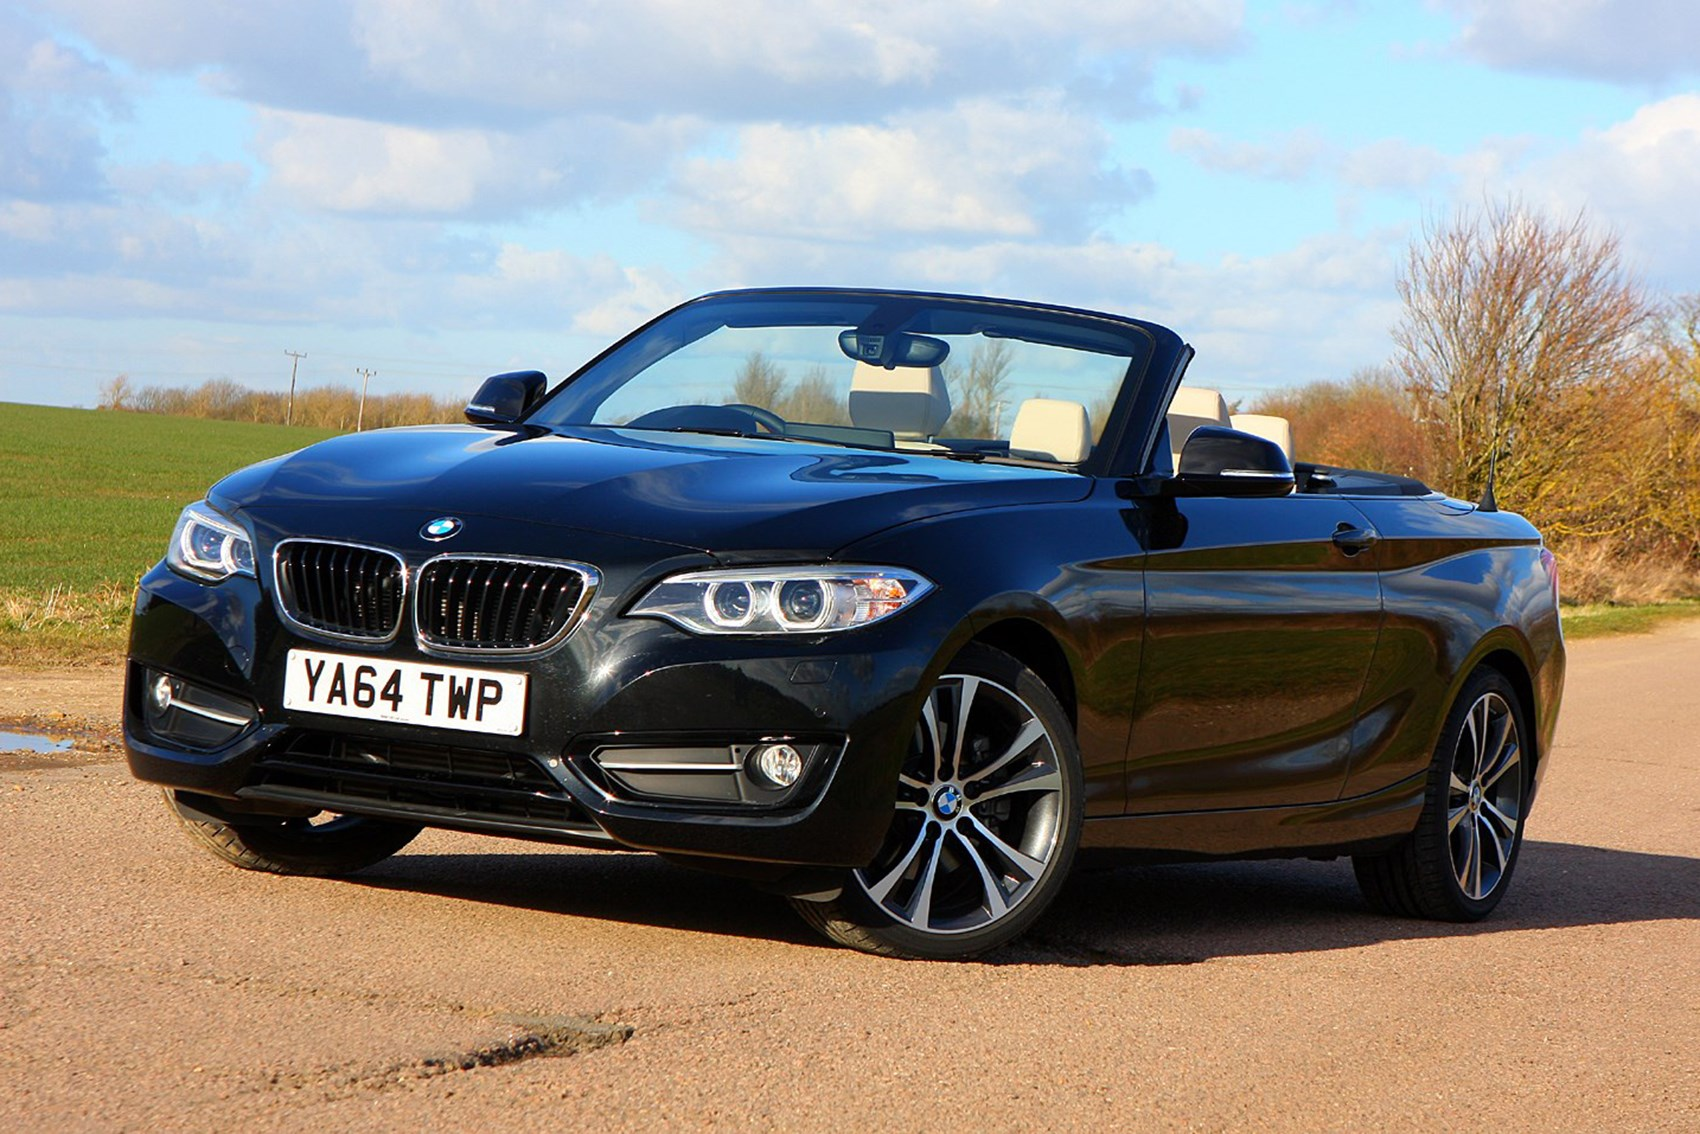 BMW 2 Series Cabriolet - best convertible cars